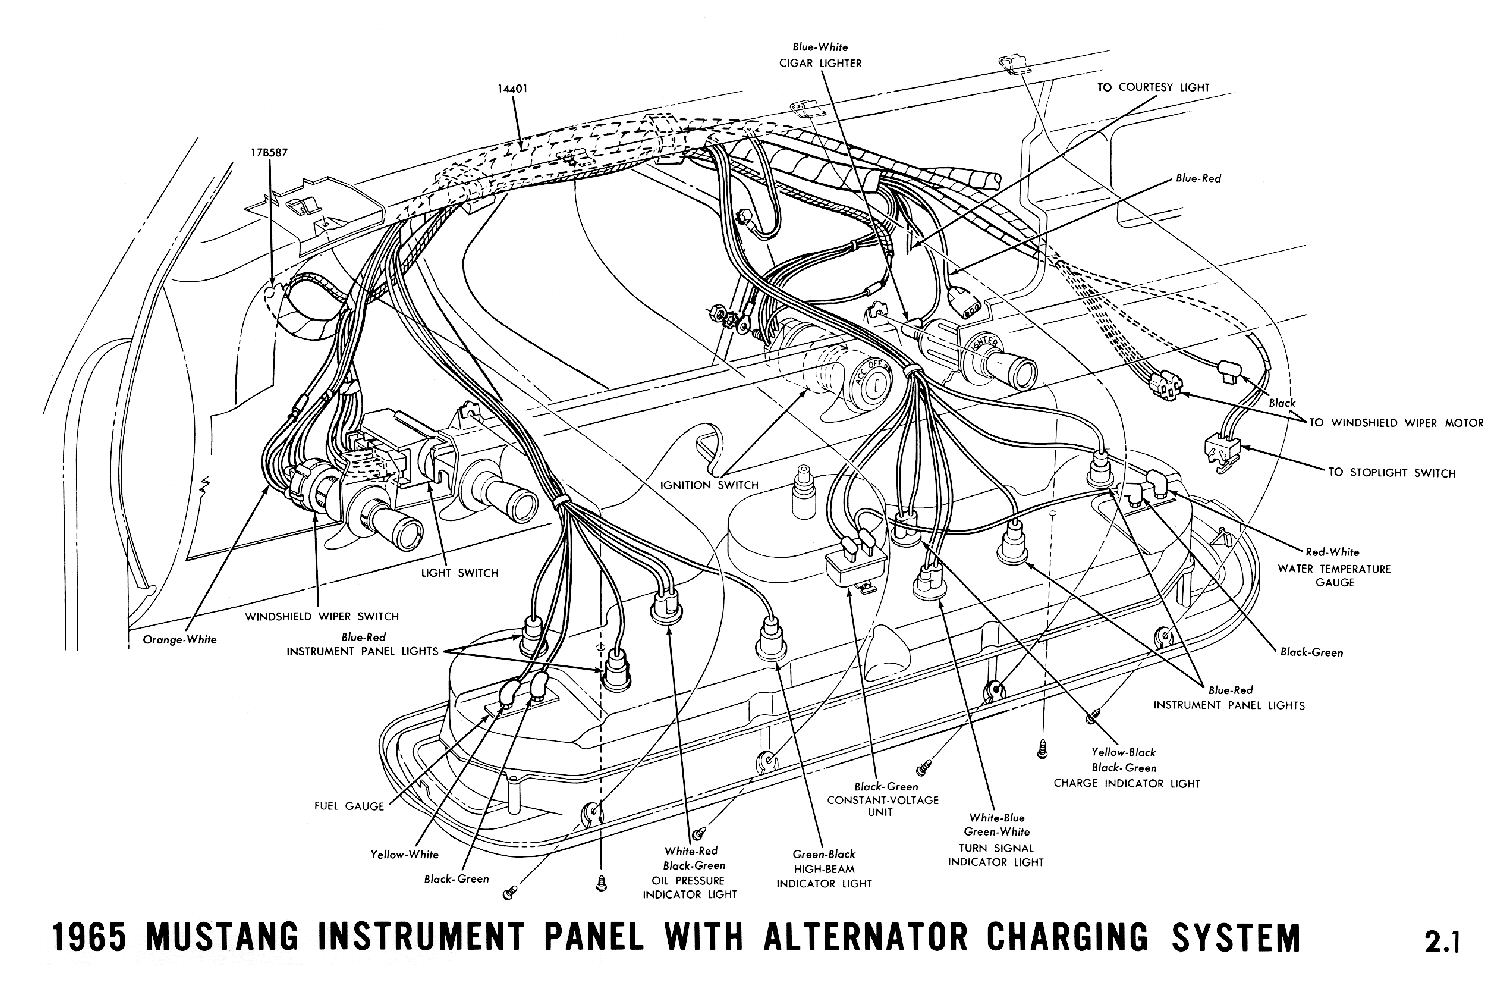 1965a 1965 mustang wiring diagrams average joe restoration 1967 mustang ignition wiring diagram at bayanpartner.co